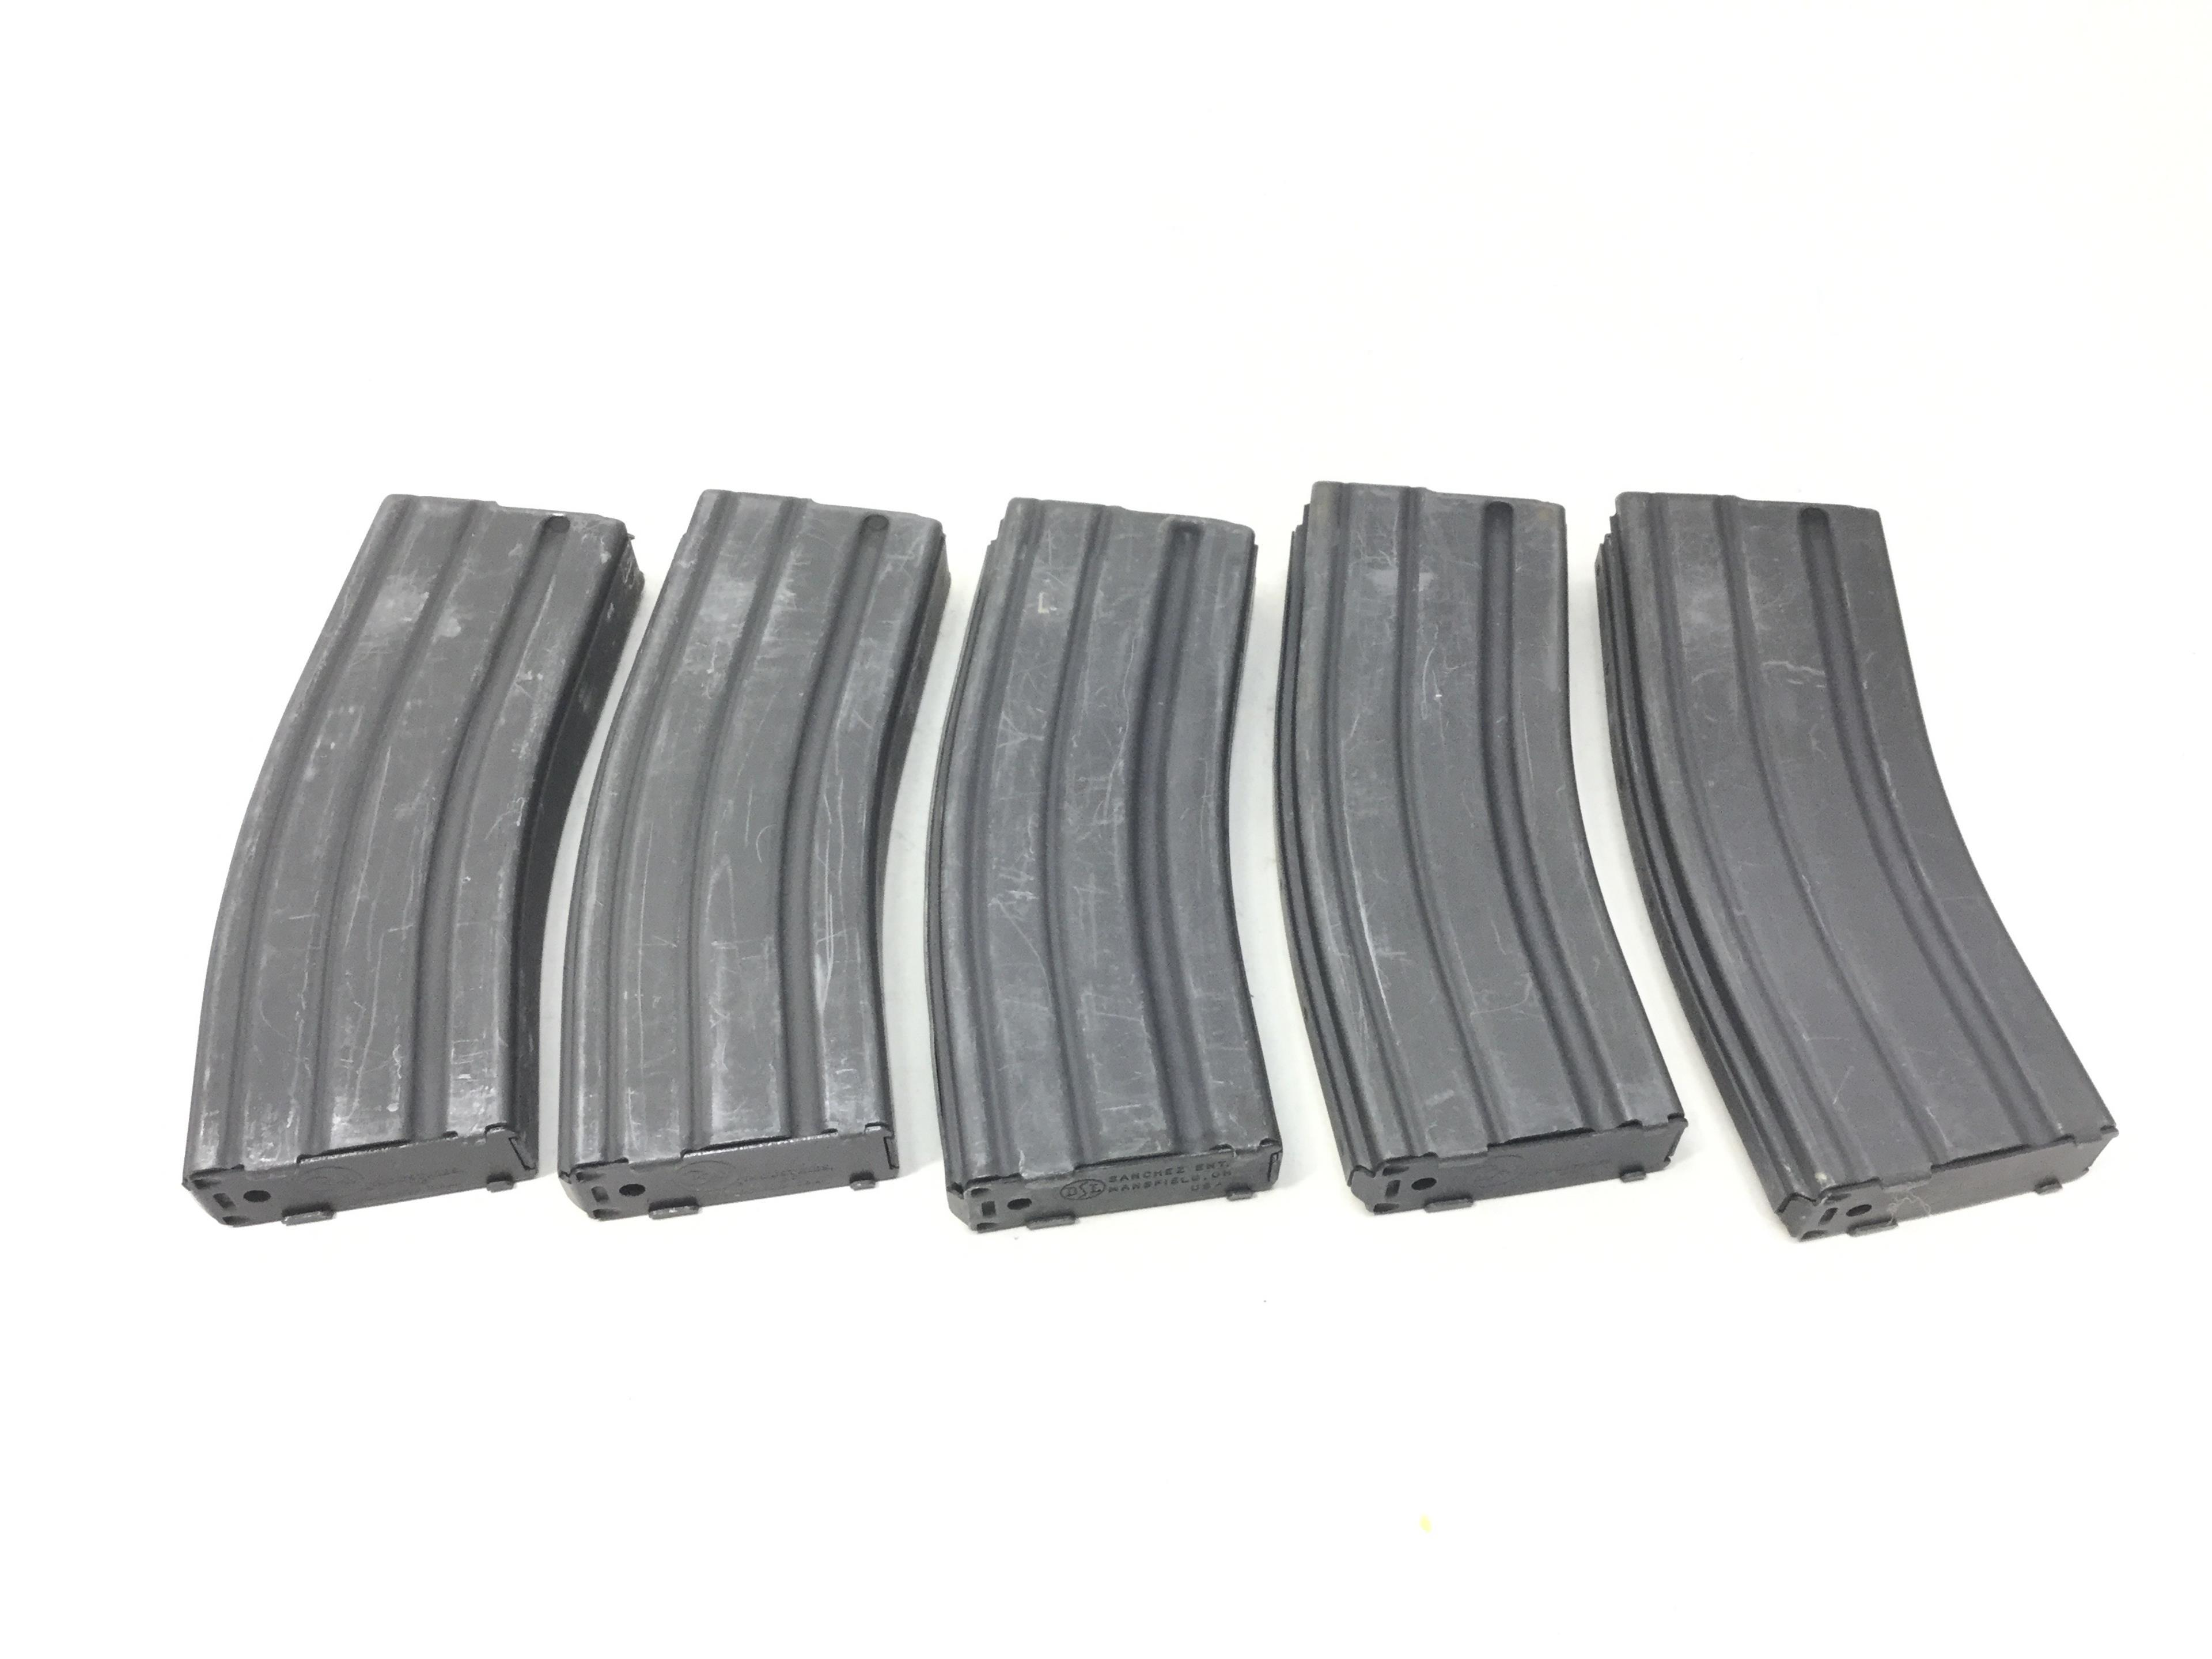 (5) Full 223 / 5.56 Mags Filled w/ 5.56 Green Tip